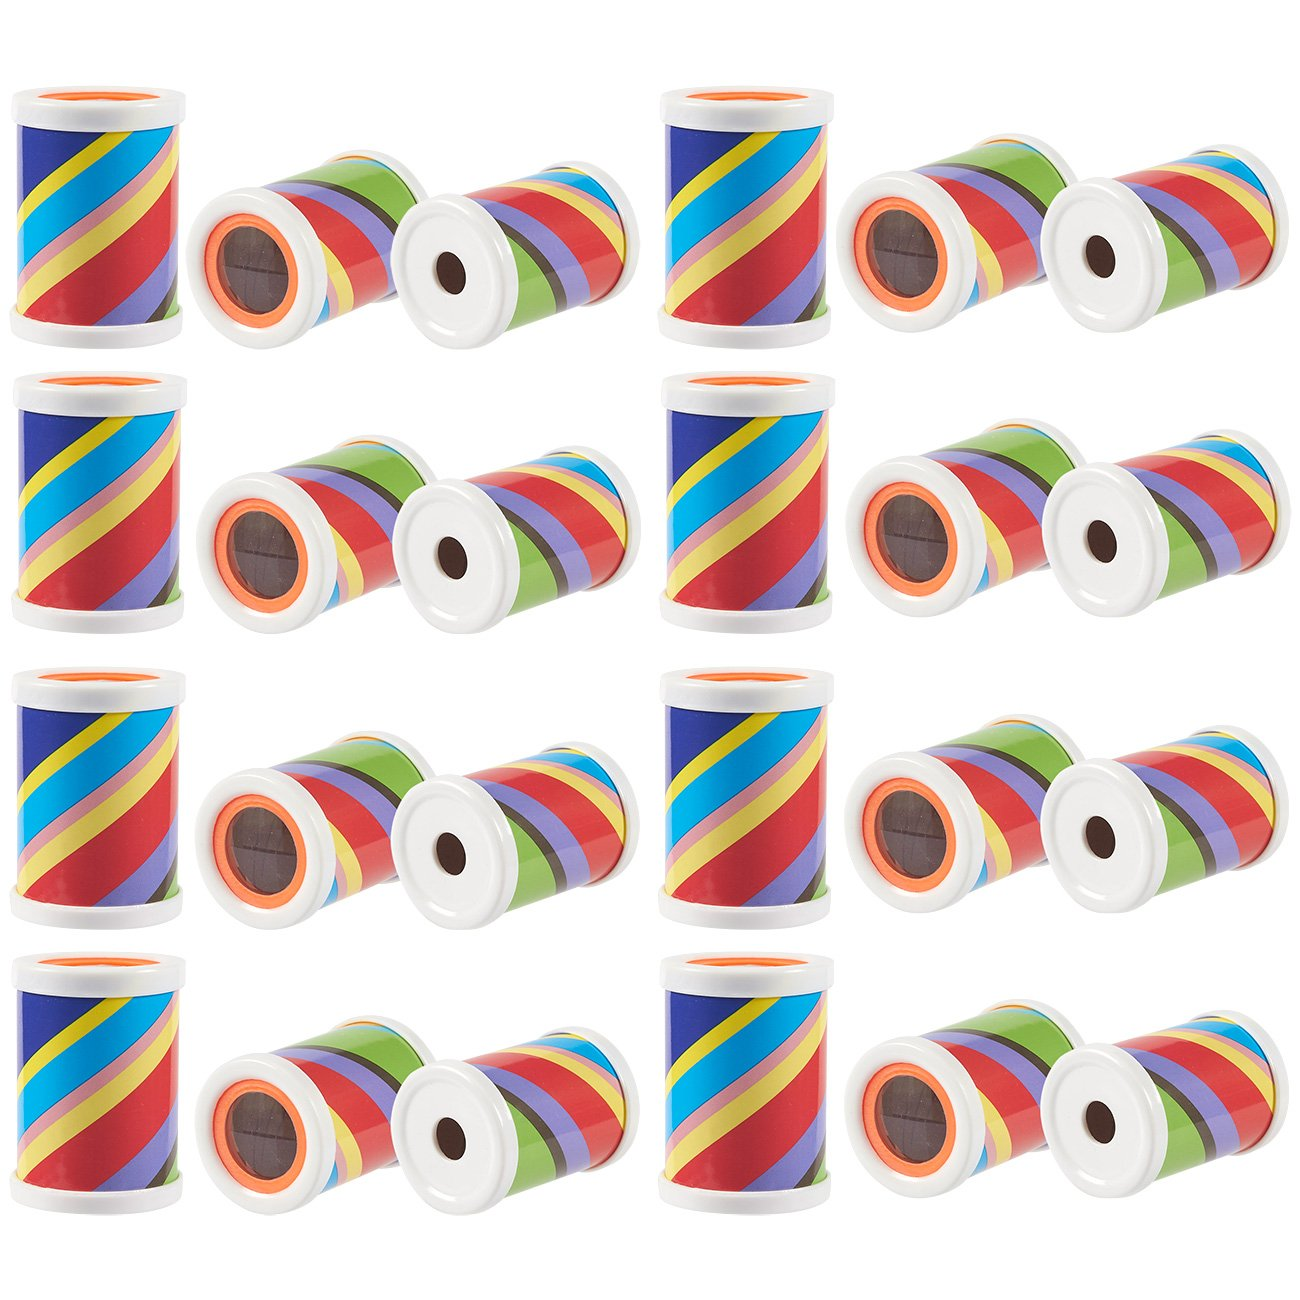 Blue Panda 24-Pack Prism Scope Set - Mini Plastic Prism Tubes, Great Party Favors Birthday Gifts Children, 2.5 x 1.75 x 1.75 inches